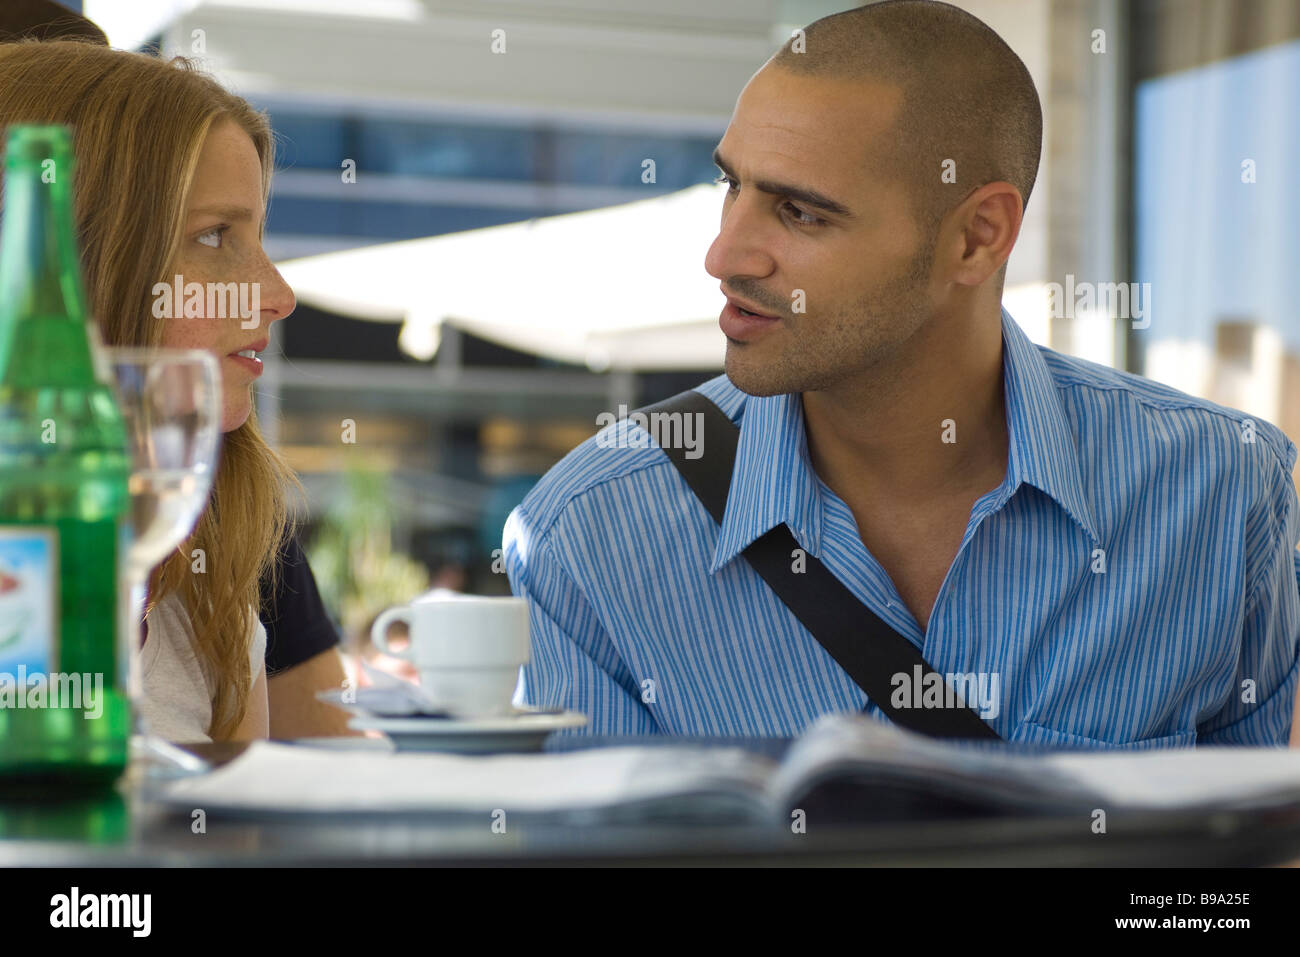 Man and woman sitting in outdoor cafe, having serious conversation - Stock Image